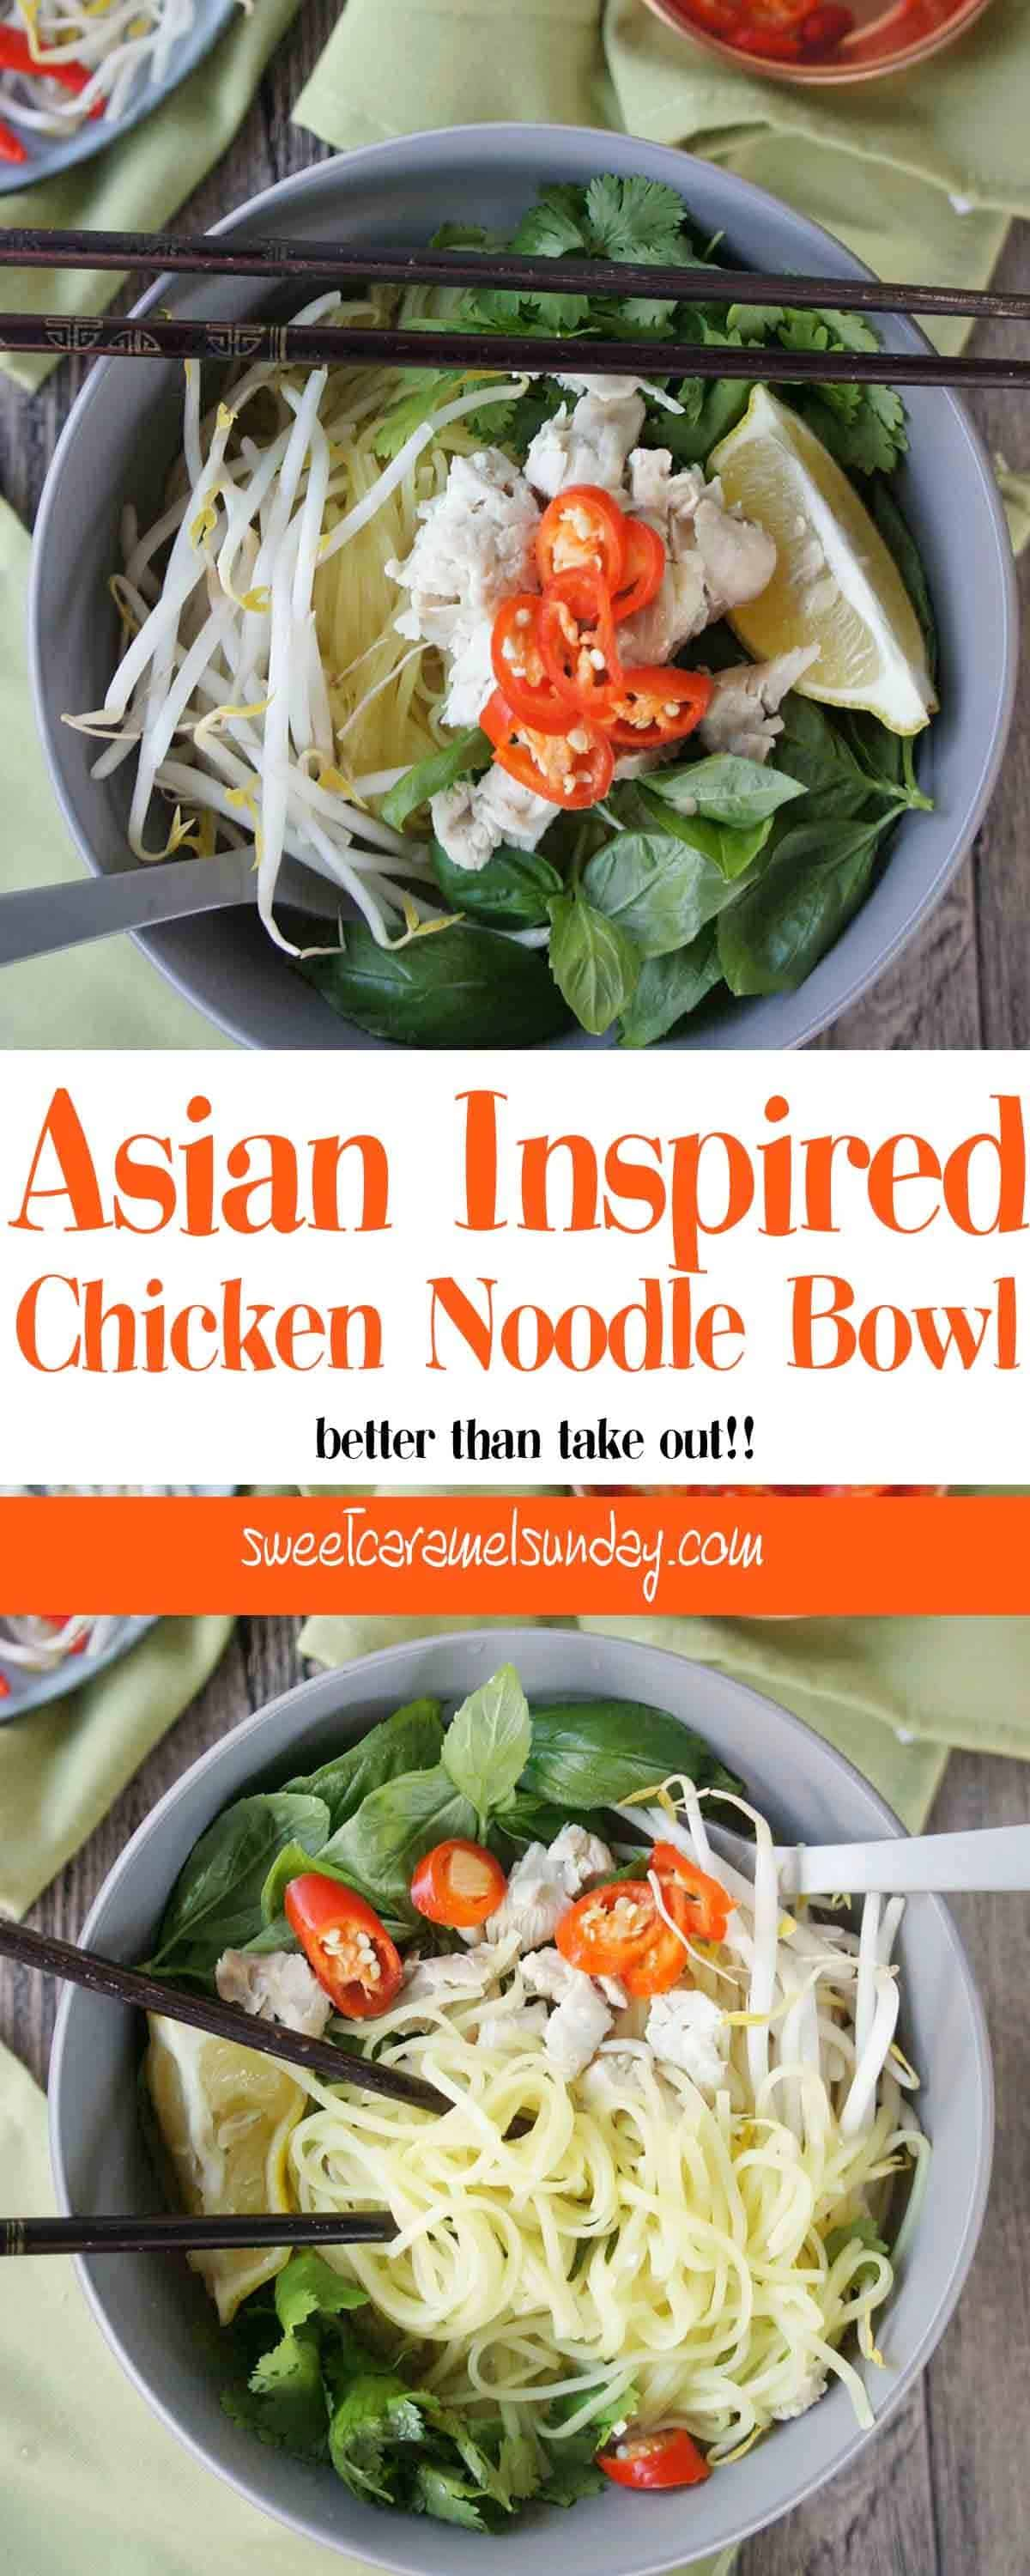 Asian Inspired Chicken Noodle Bowl with chopsticks